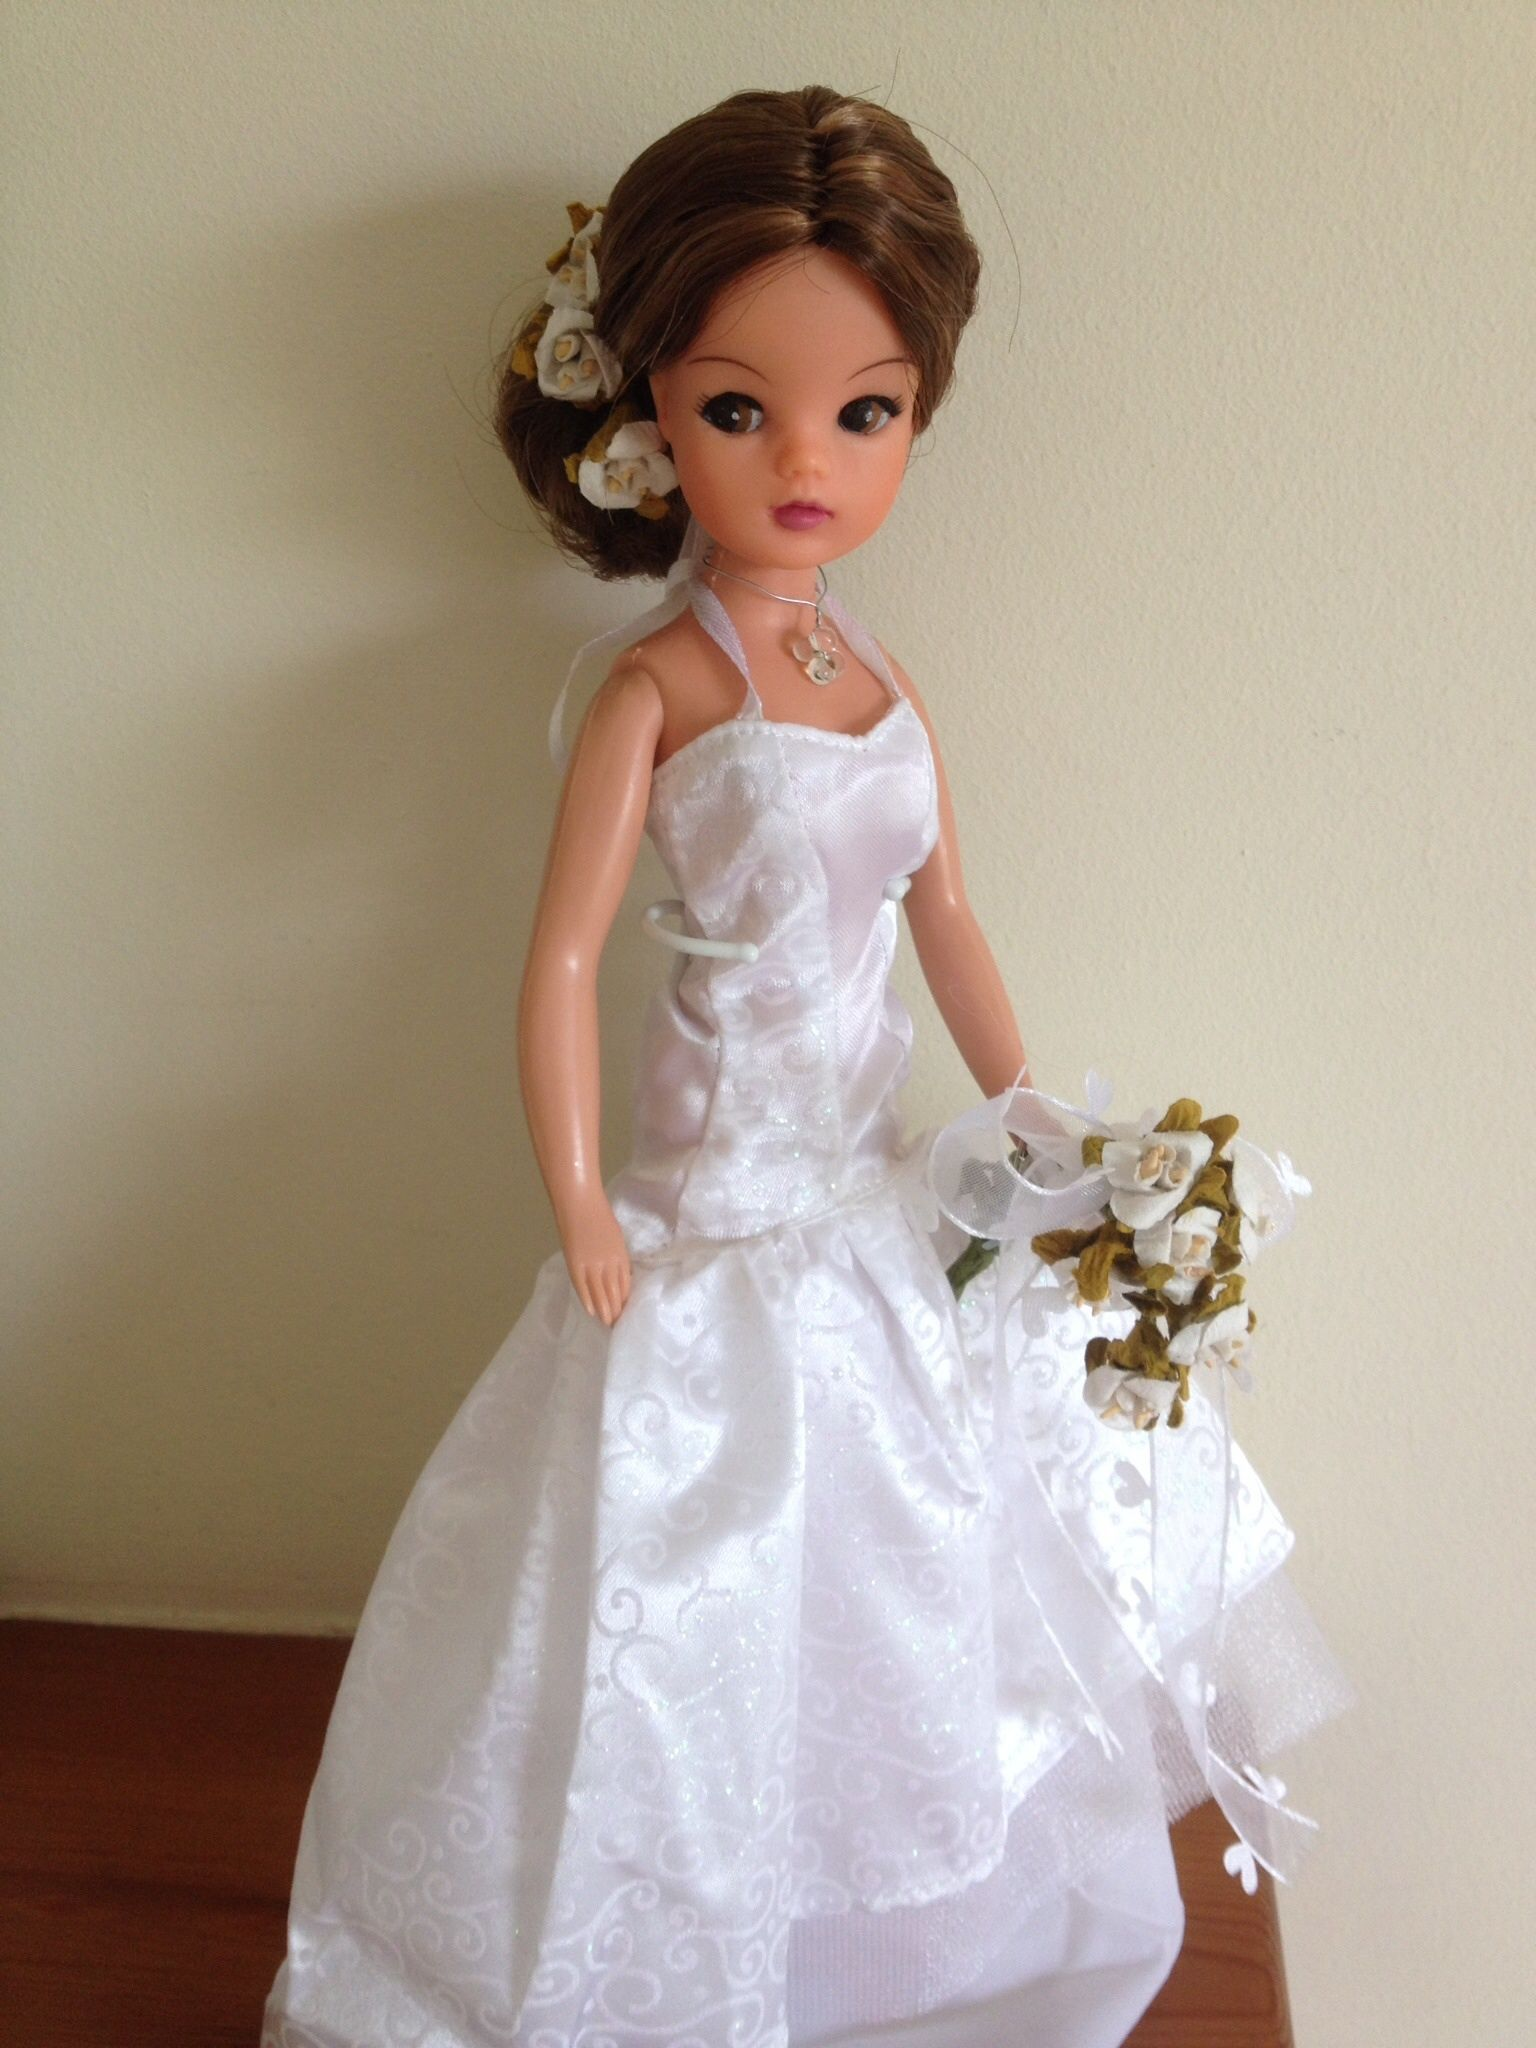 Rerooted and repainted Sindy bride now sold